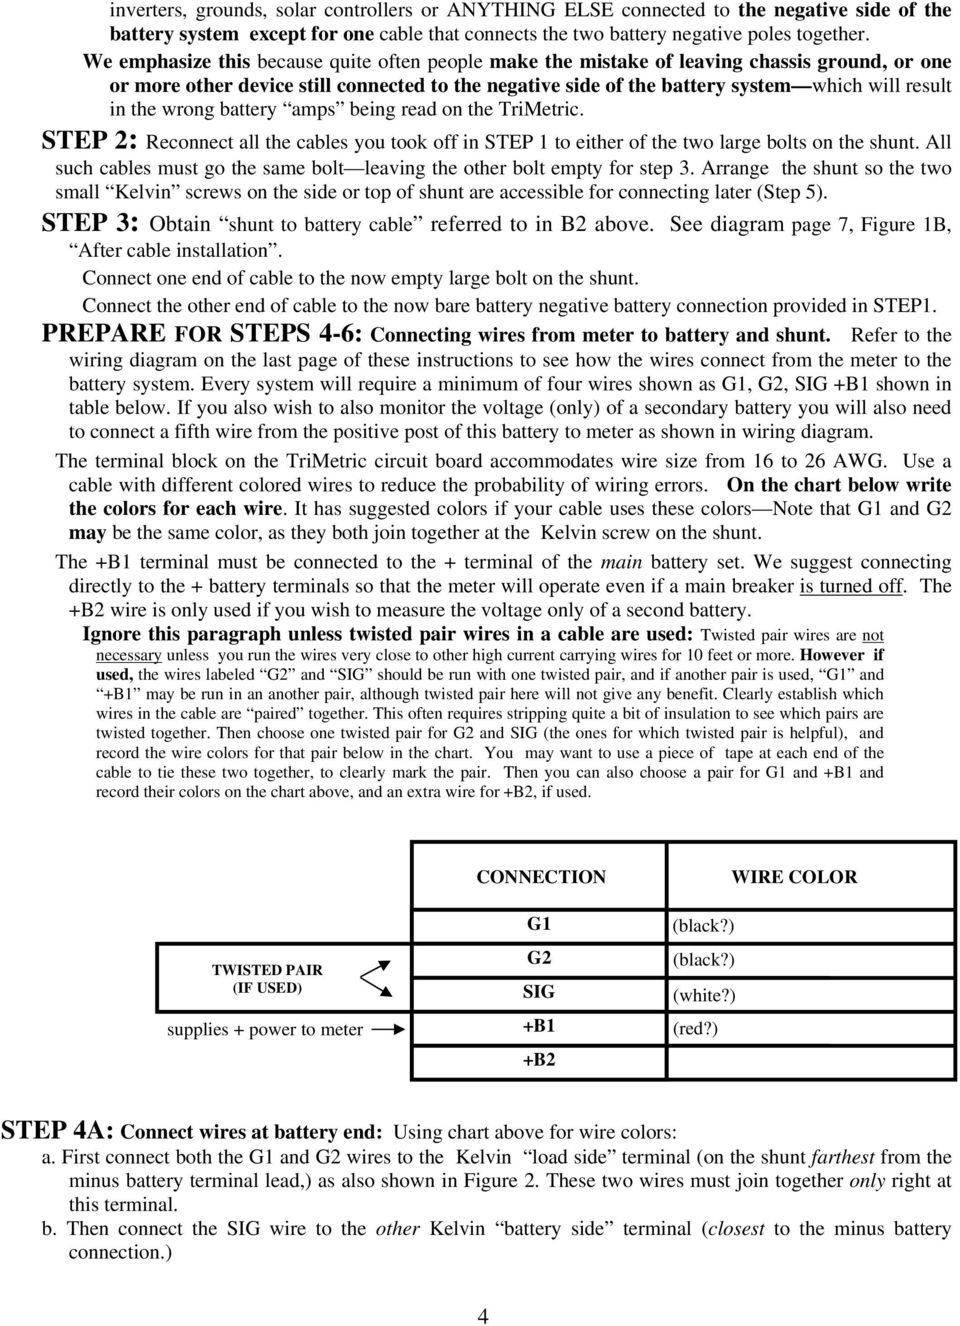 INSTALLER S INSTRUCTIONS FOR TRI-METRIC Battery system monitor ...